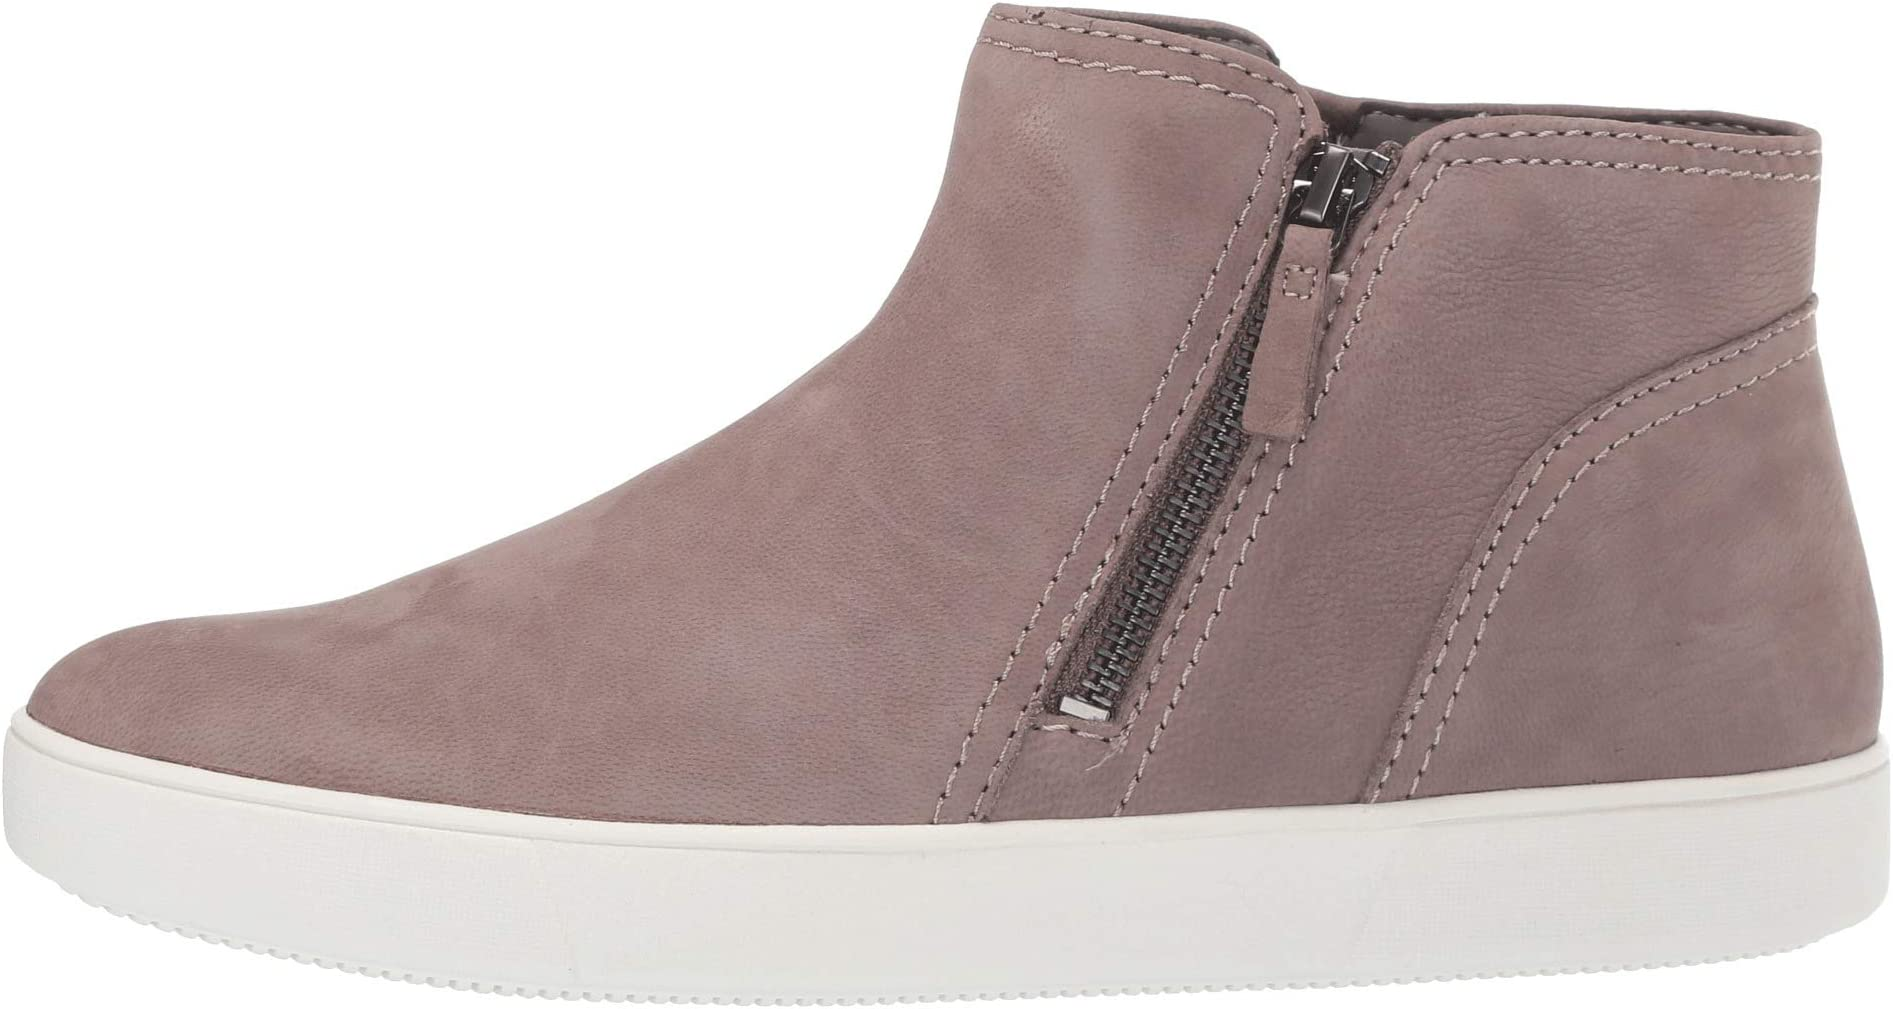 Naturalizer Miranda | Women's shoes | 2020 Newest